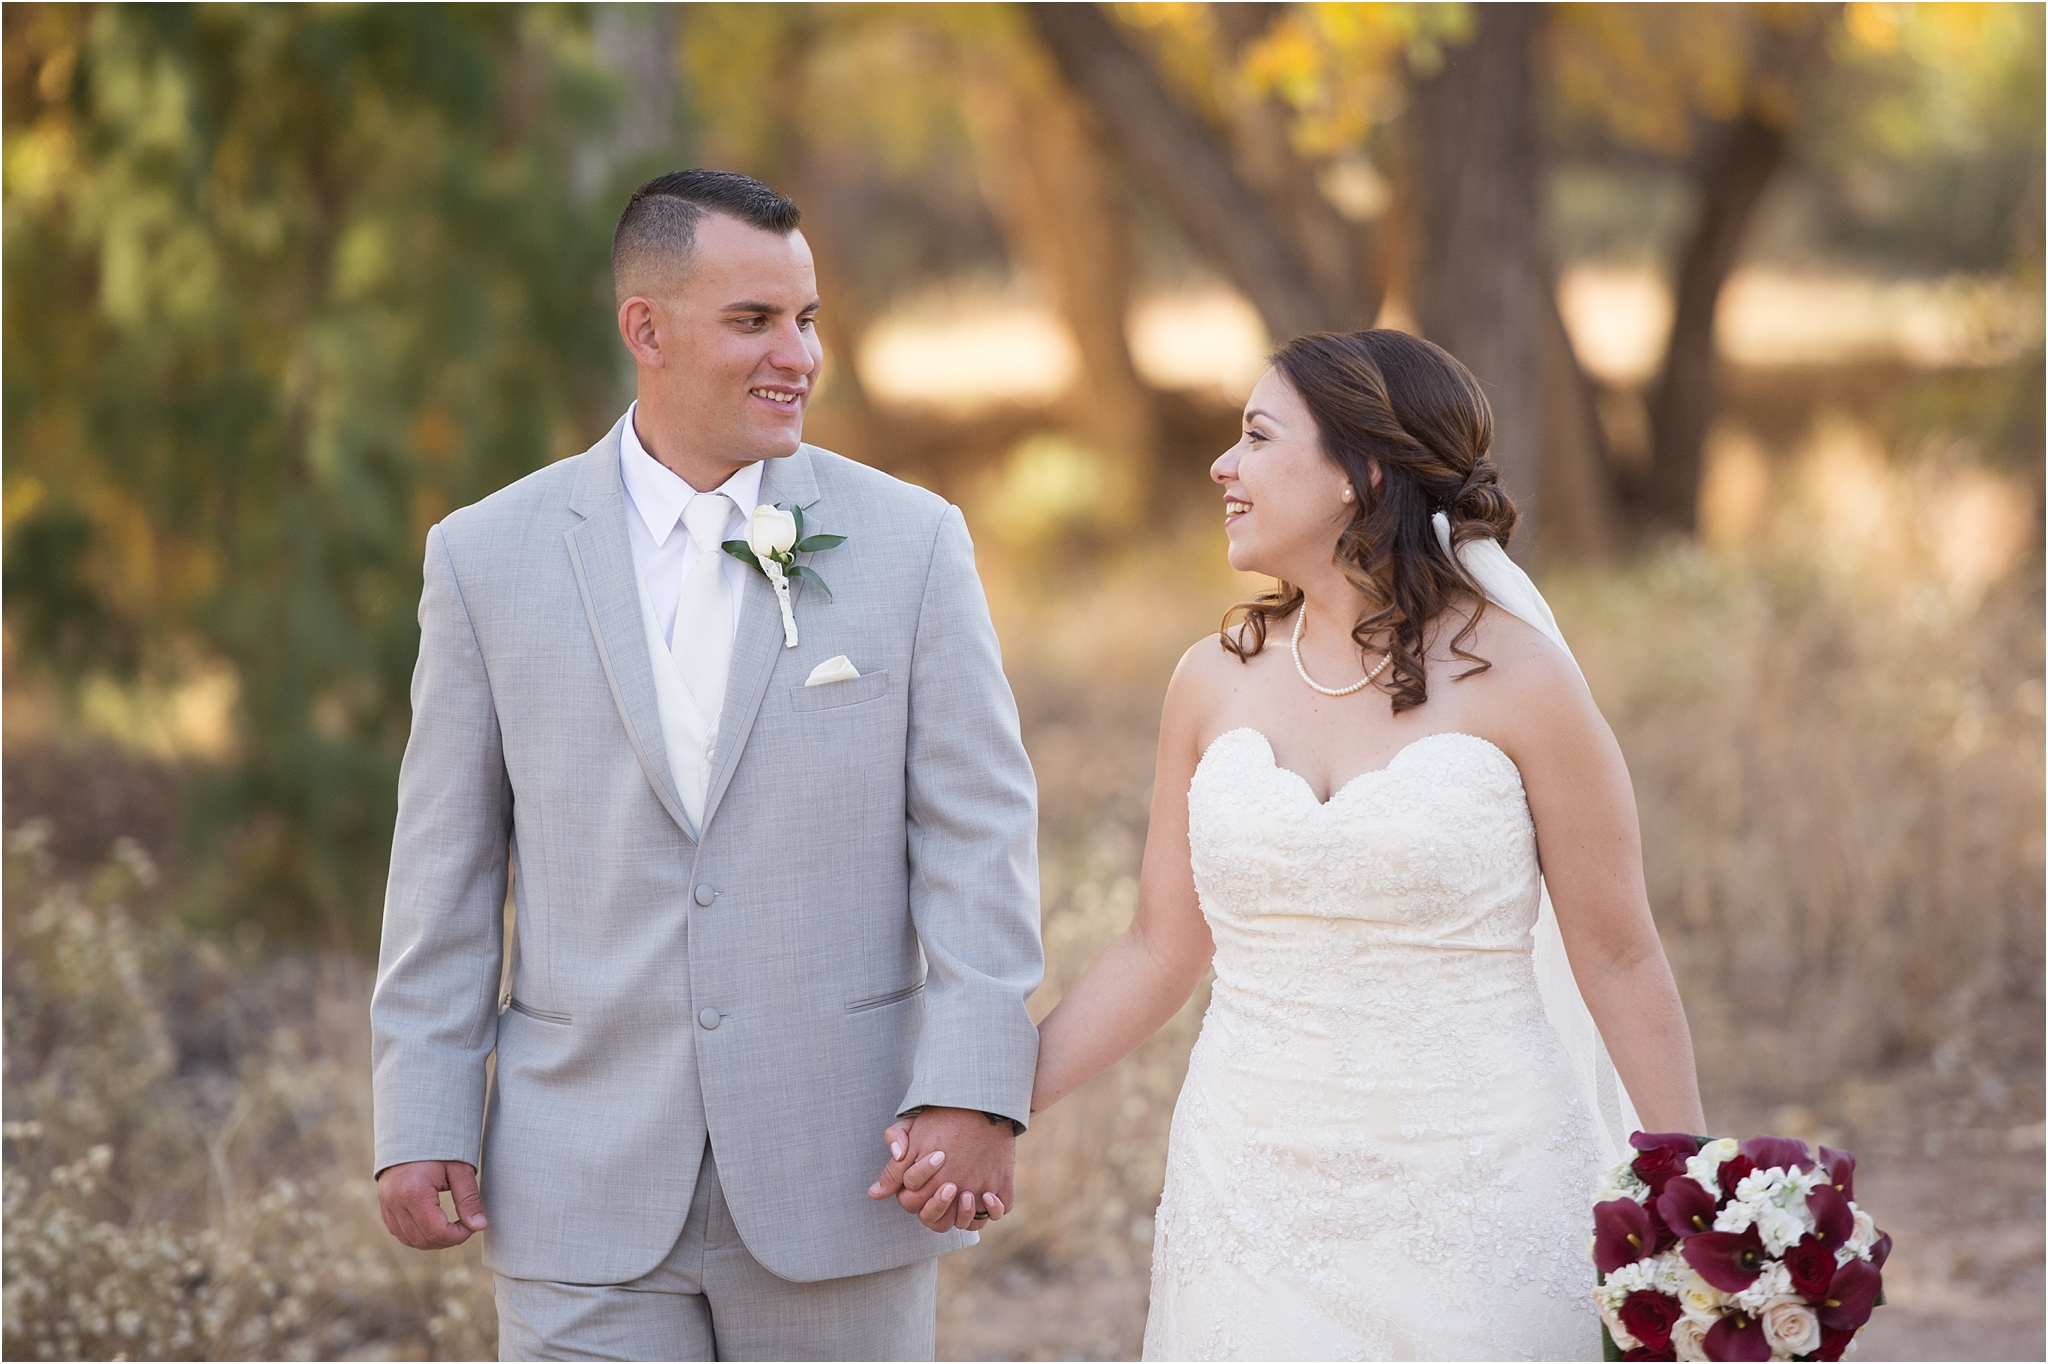 kayla kitts photography - albuquerque wedding photographer - hairpins and scissors - a cake odyssey - new mexico wedding photographer_0049.jpg